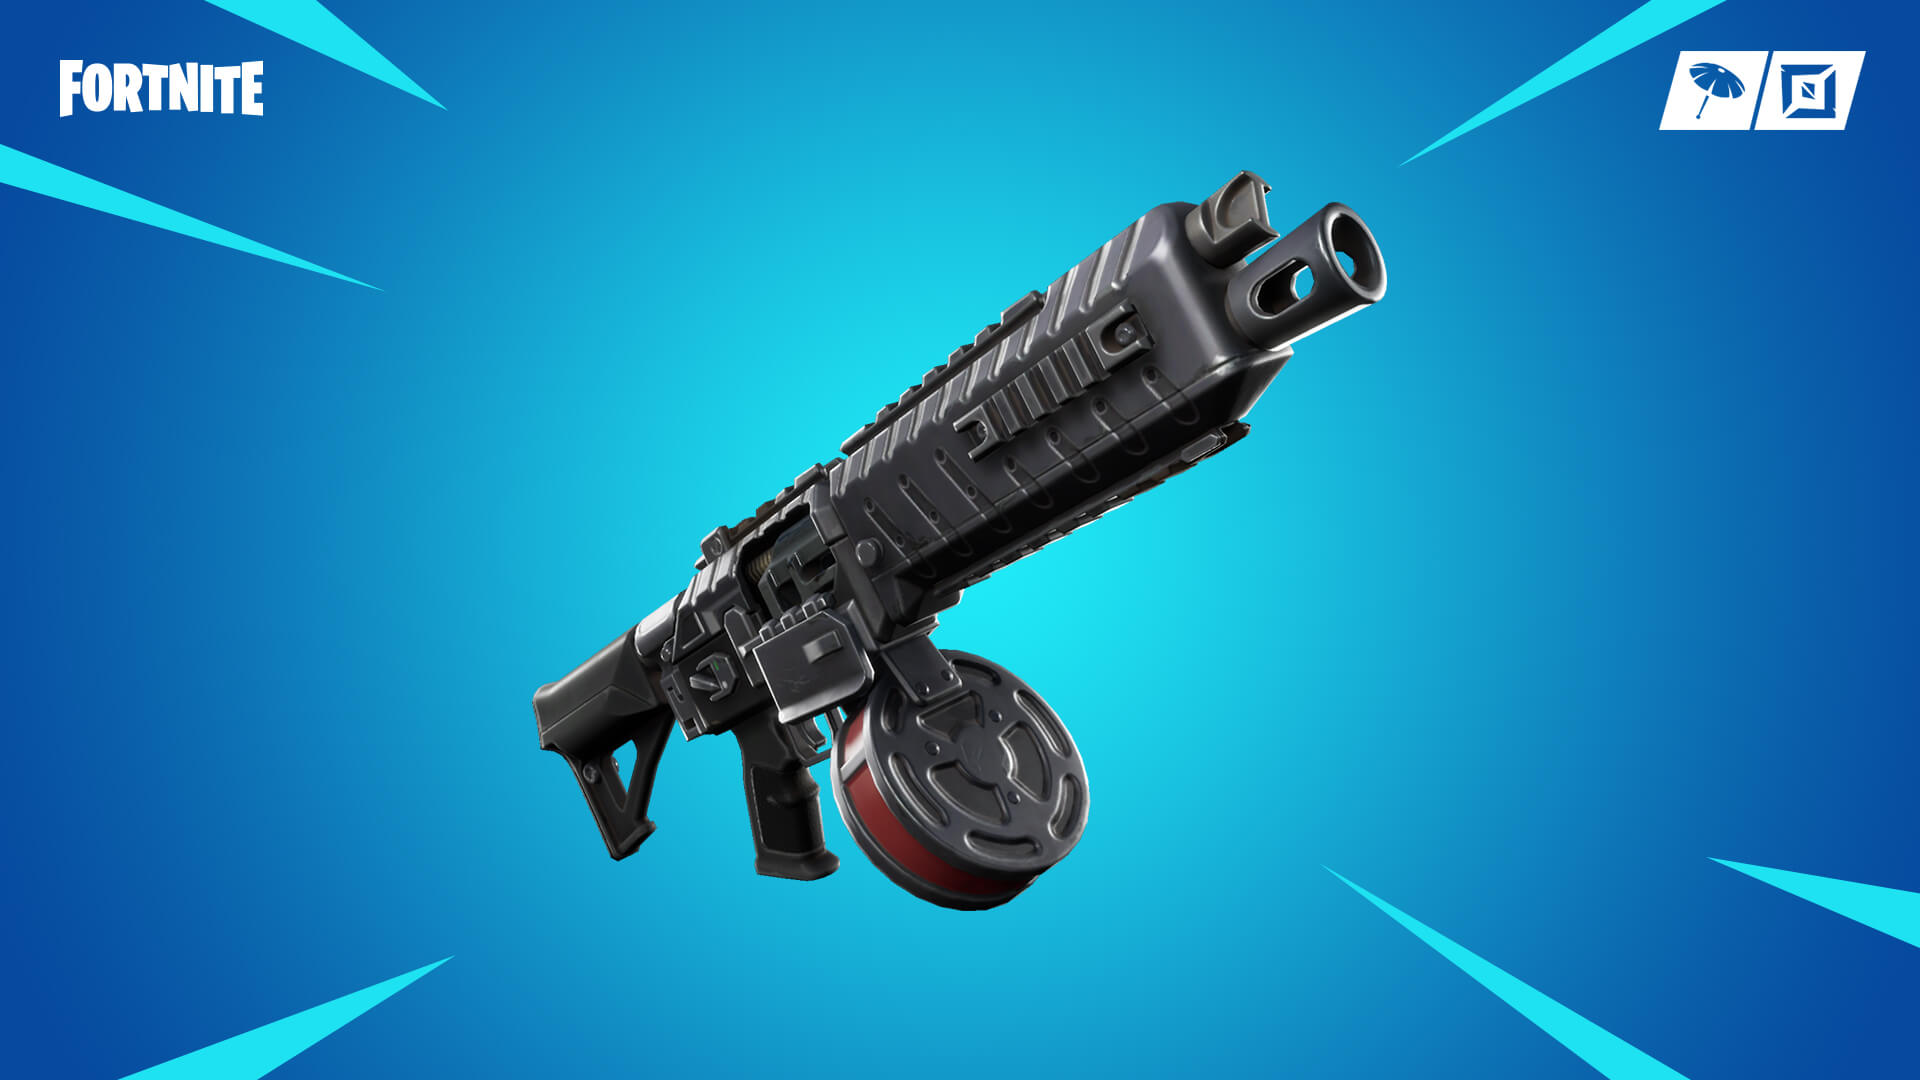 Fortnite V9.30 Content Update #2 patch notes